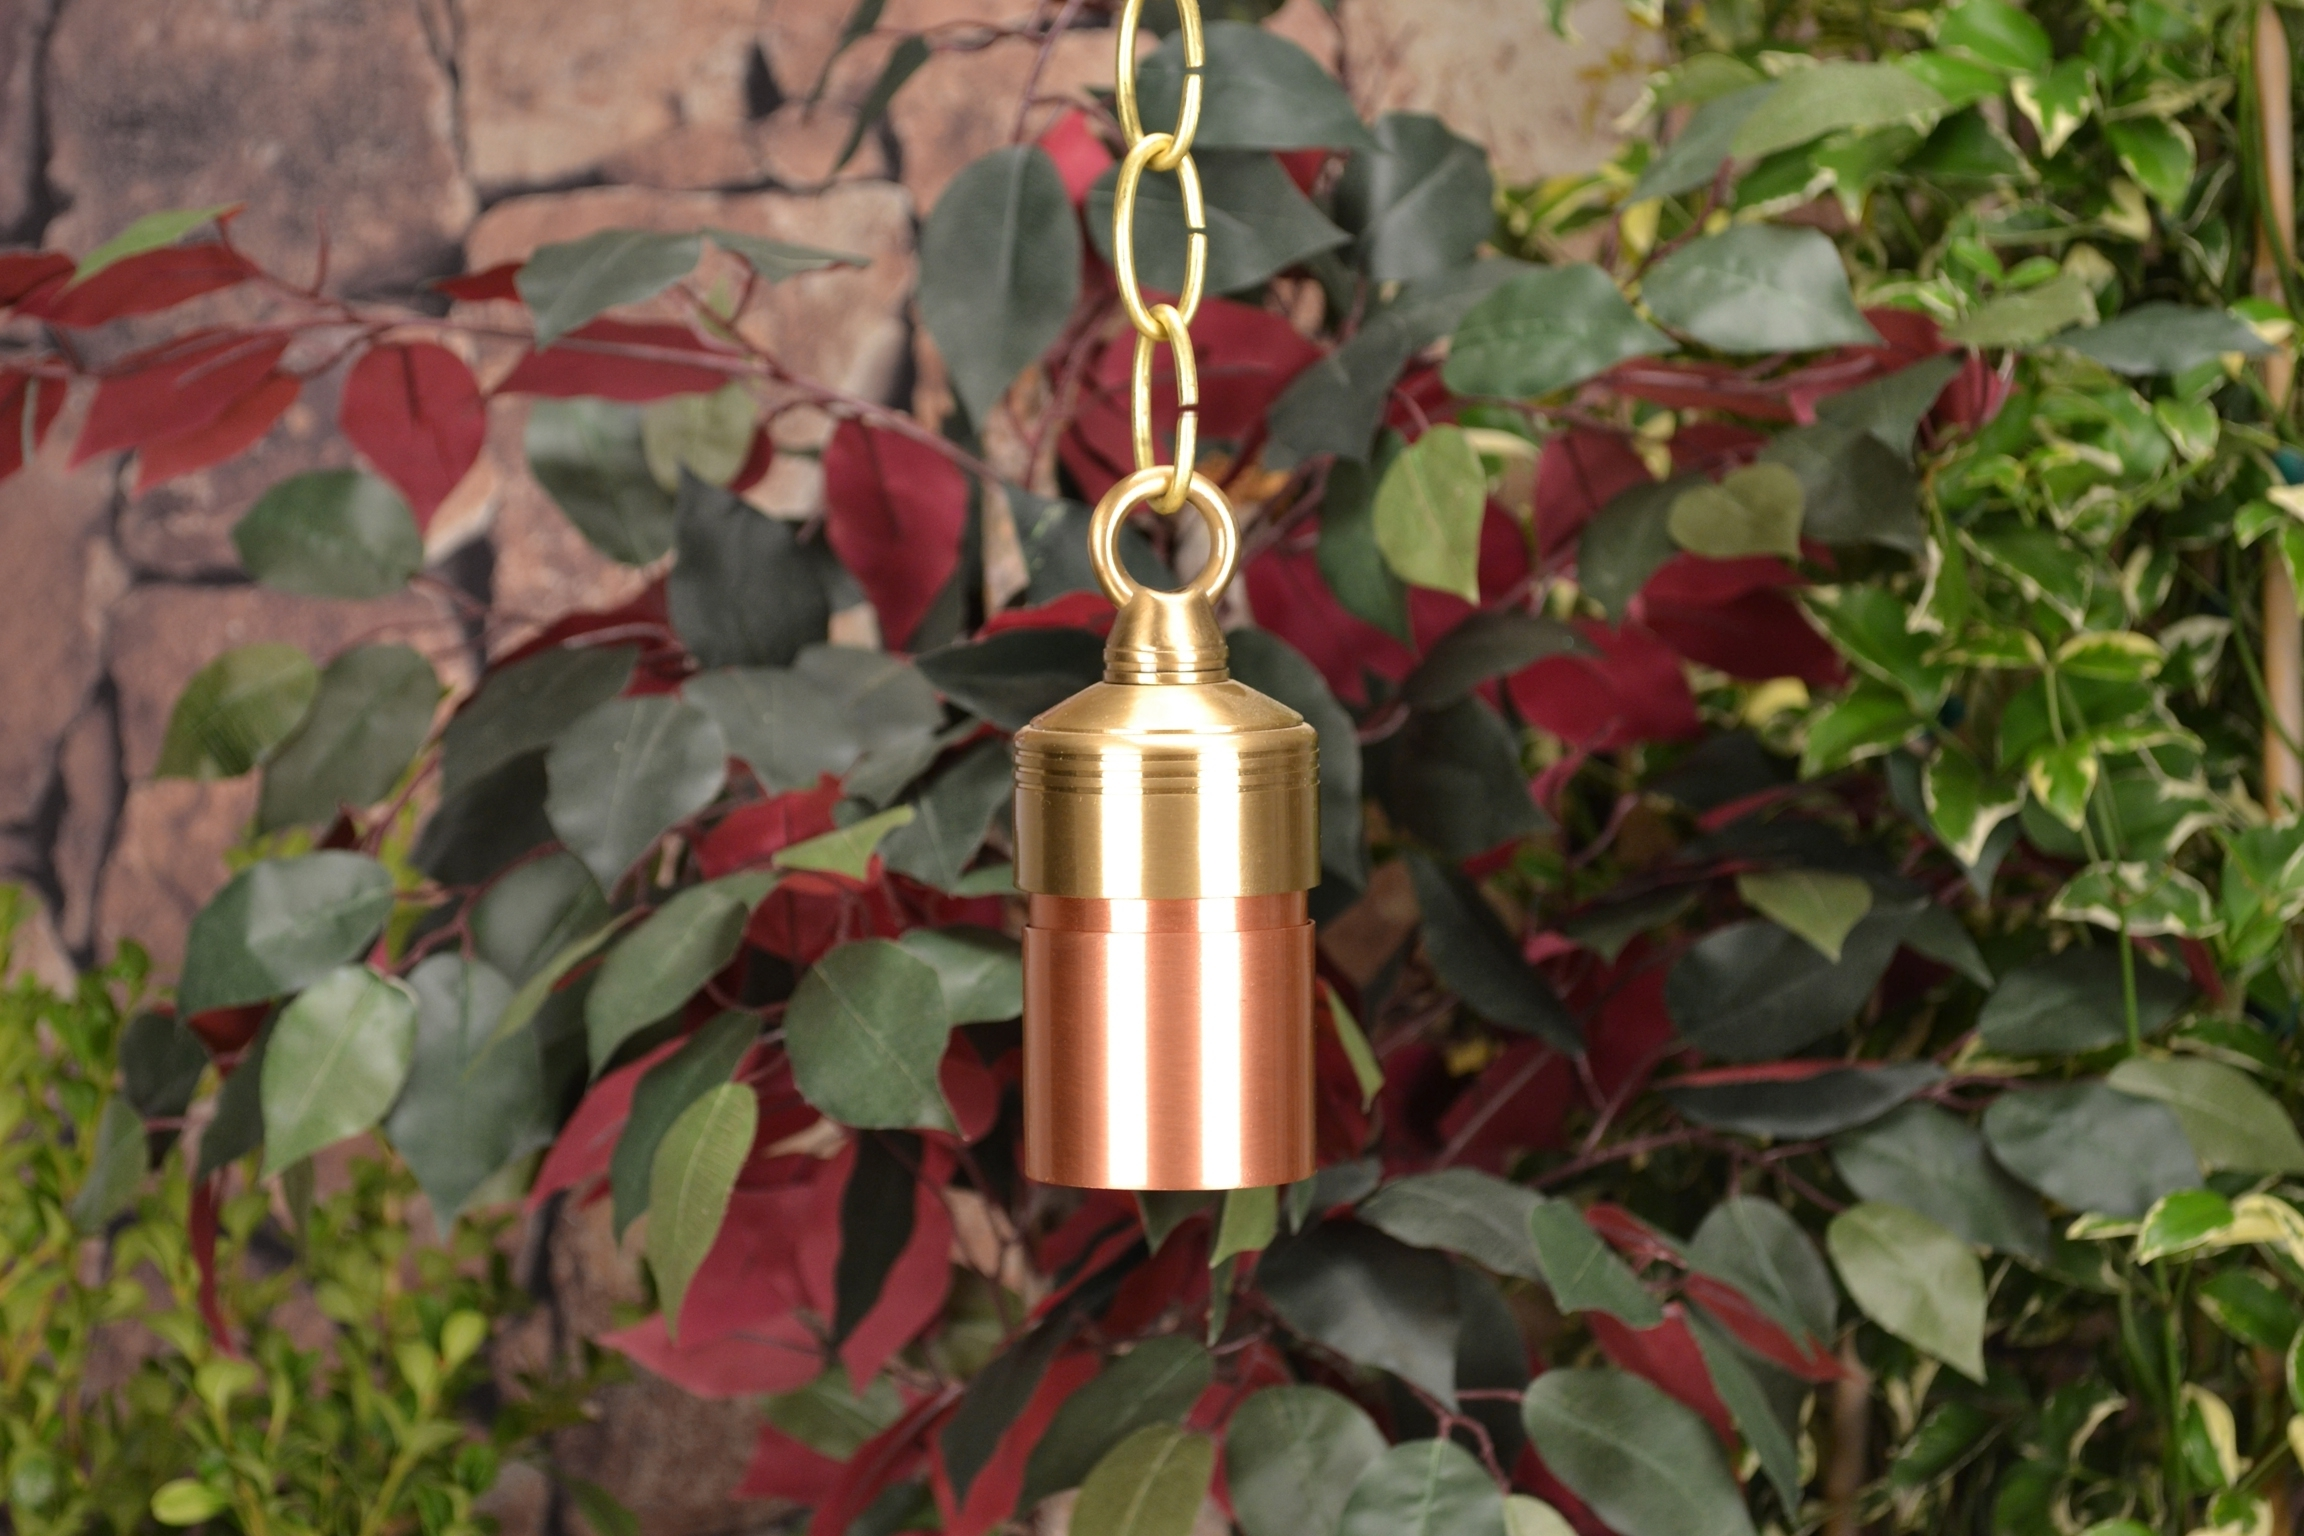 Outdoor Hanging Low Voltage Lights Regarding Well Known Outdoor Low Voltage Hanging Tree Lights • Outdoor Lighting (View 16 of 20)